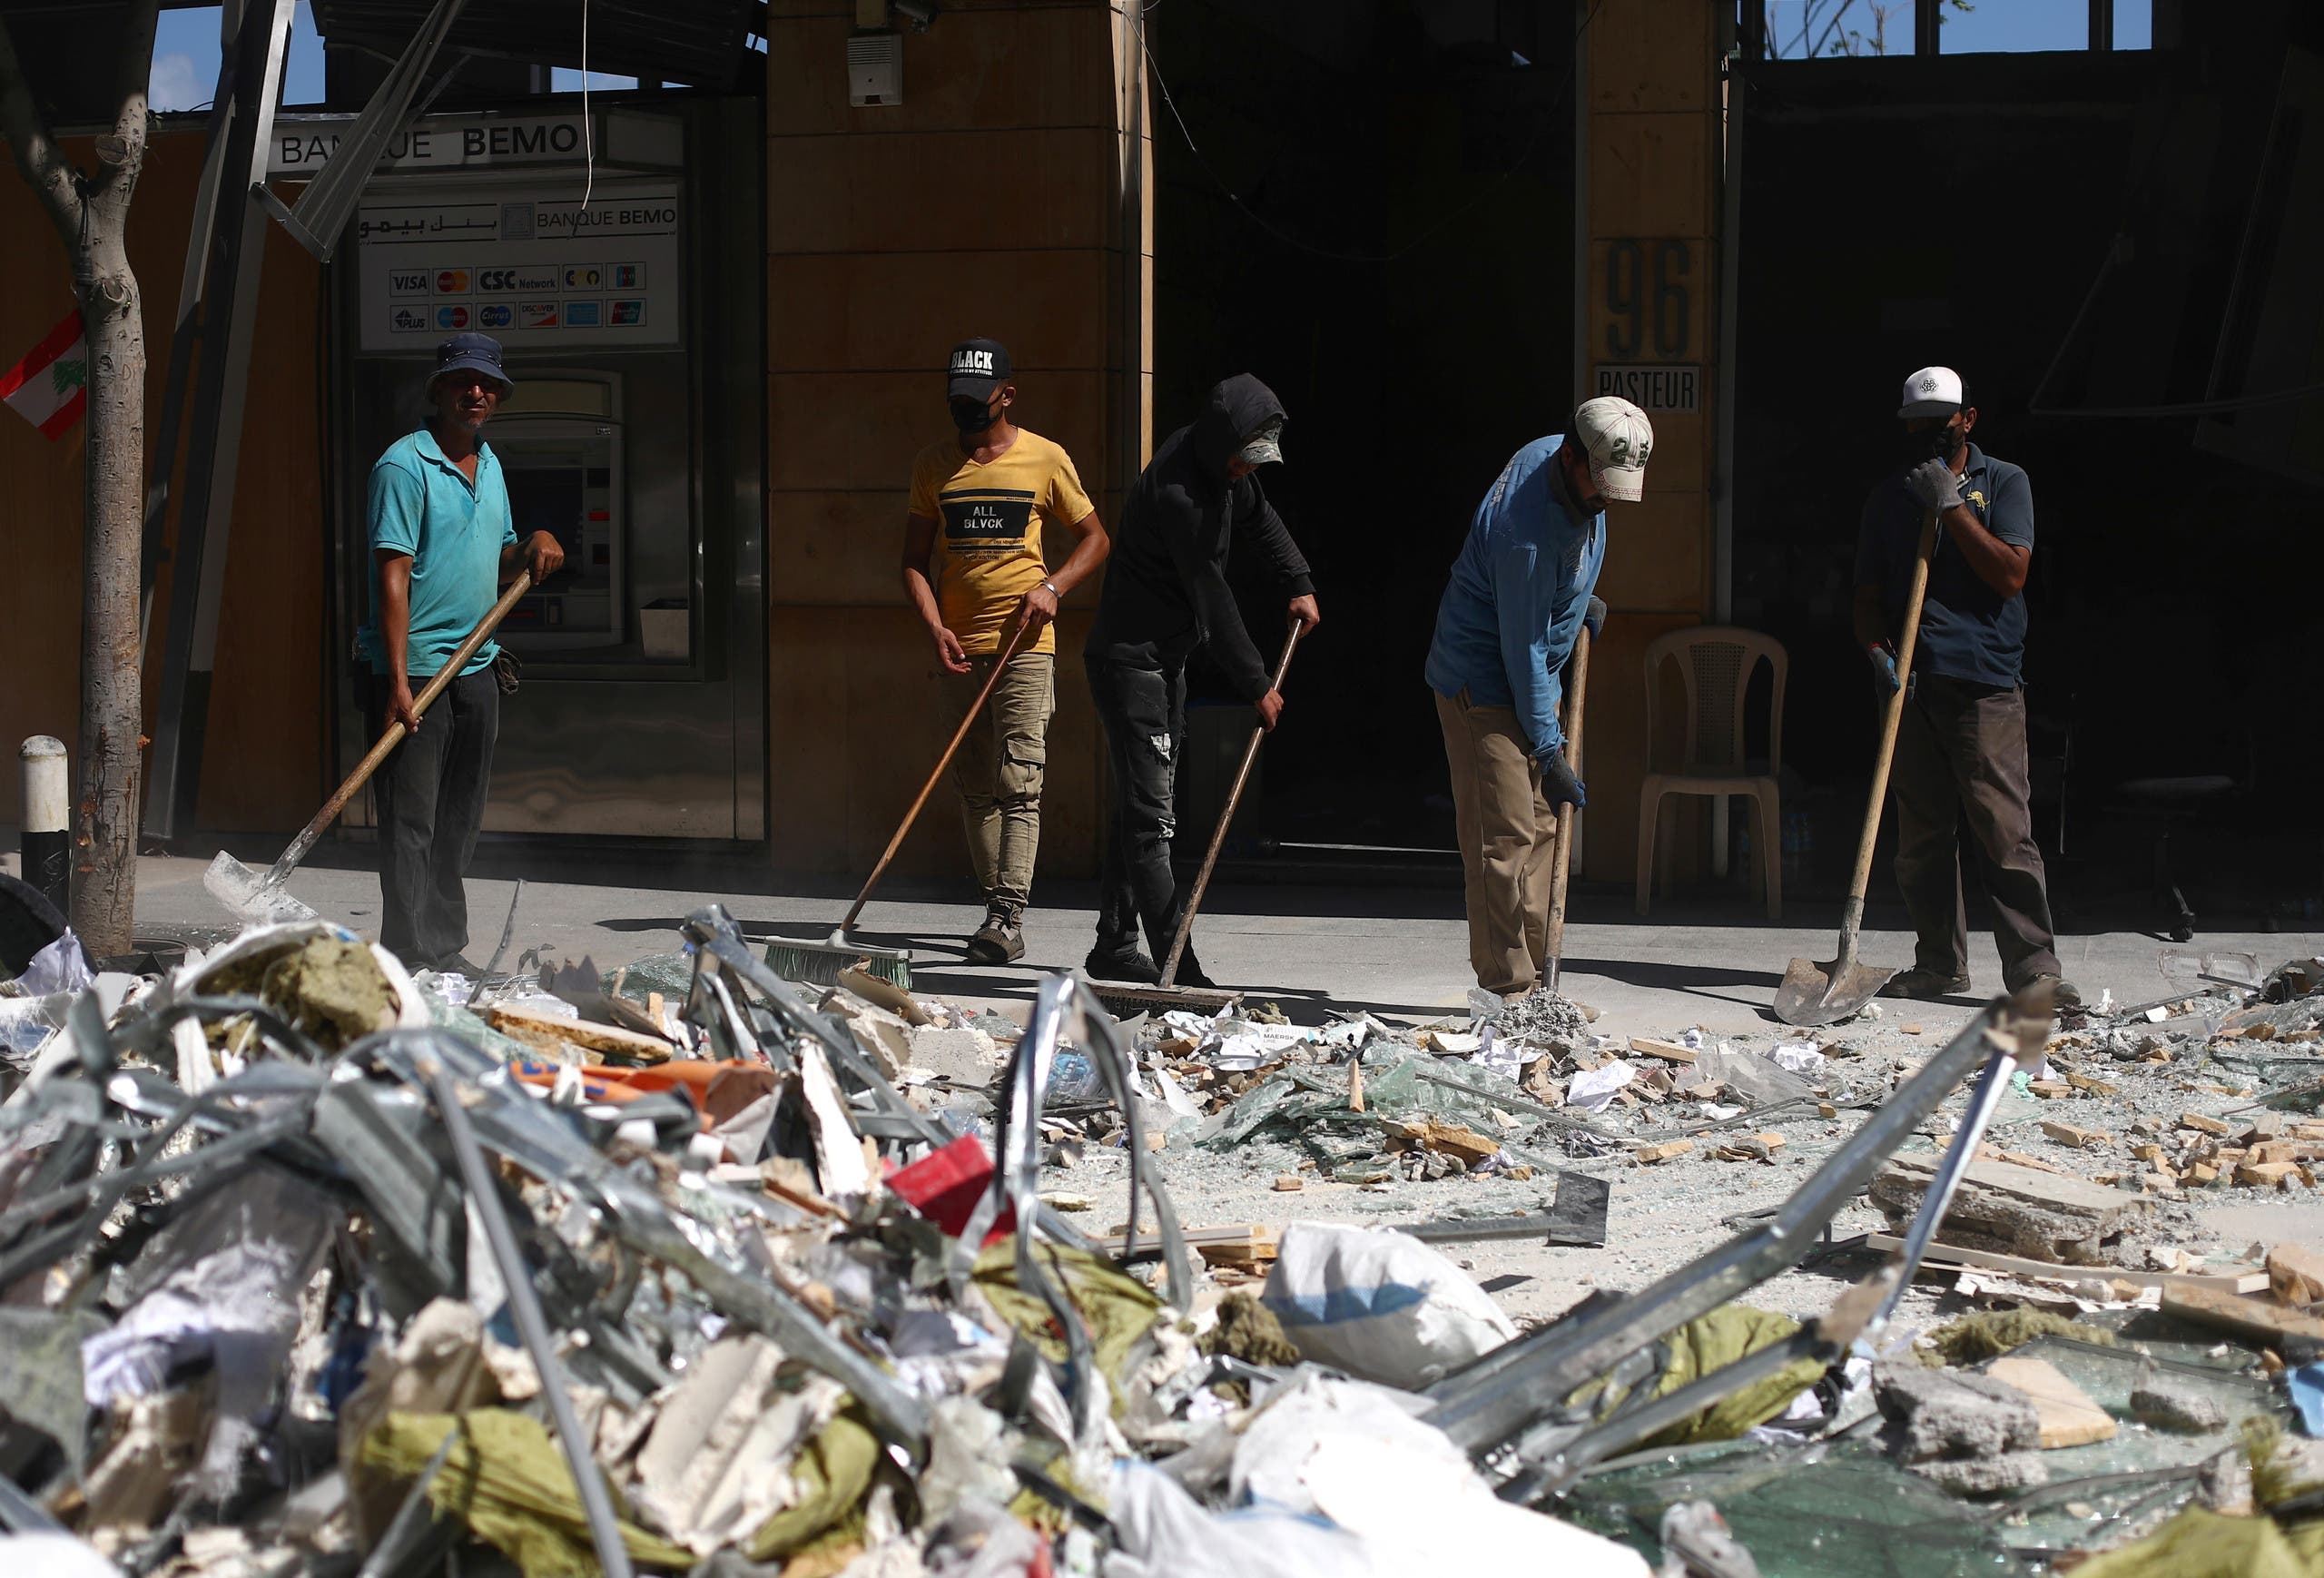 People clean debris from the street following Tuesday's blast in Beirut's port area, Lebanon August 9, 2020. (Reuters)